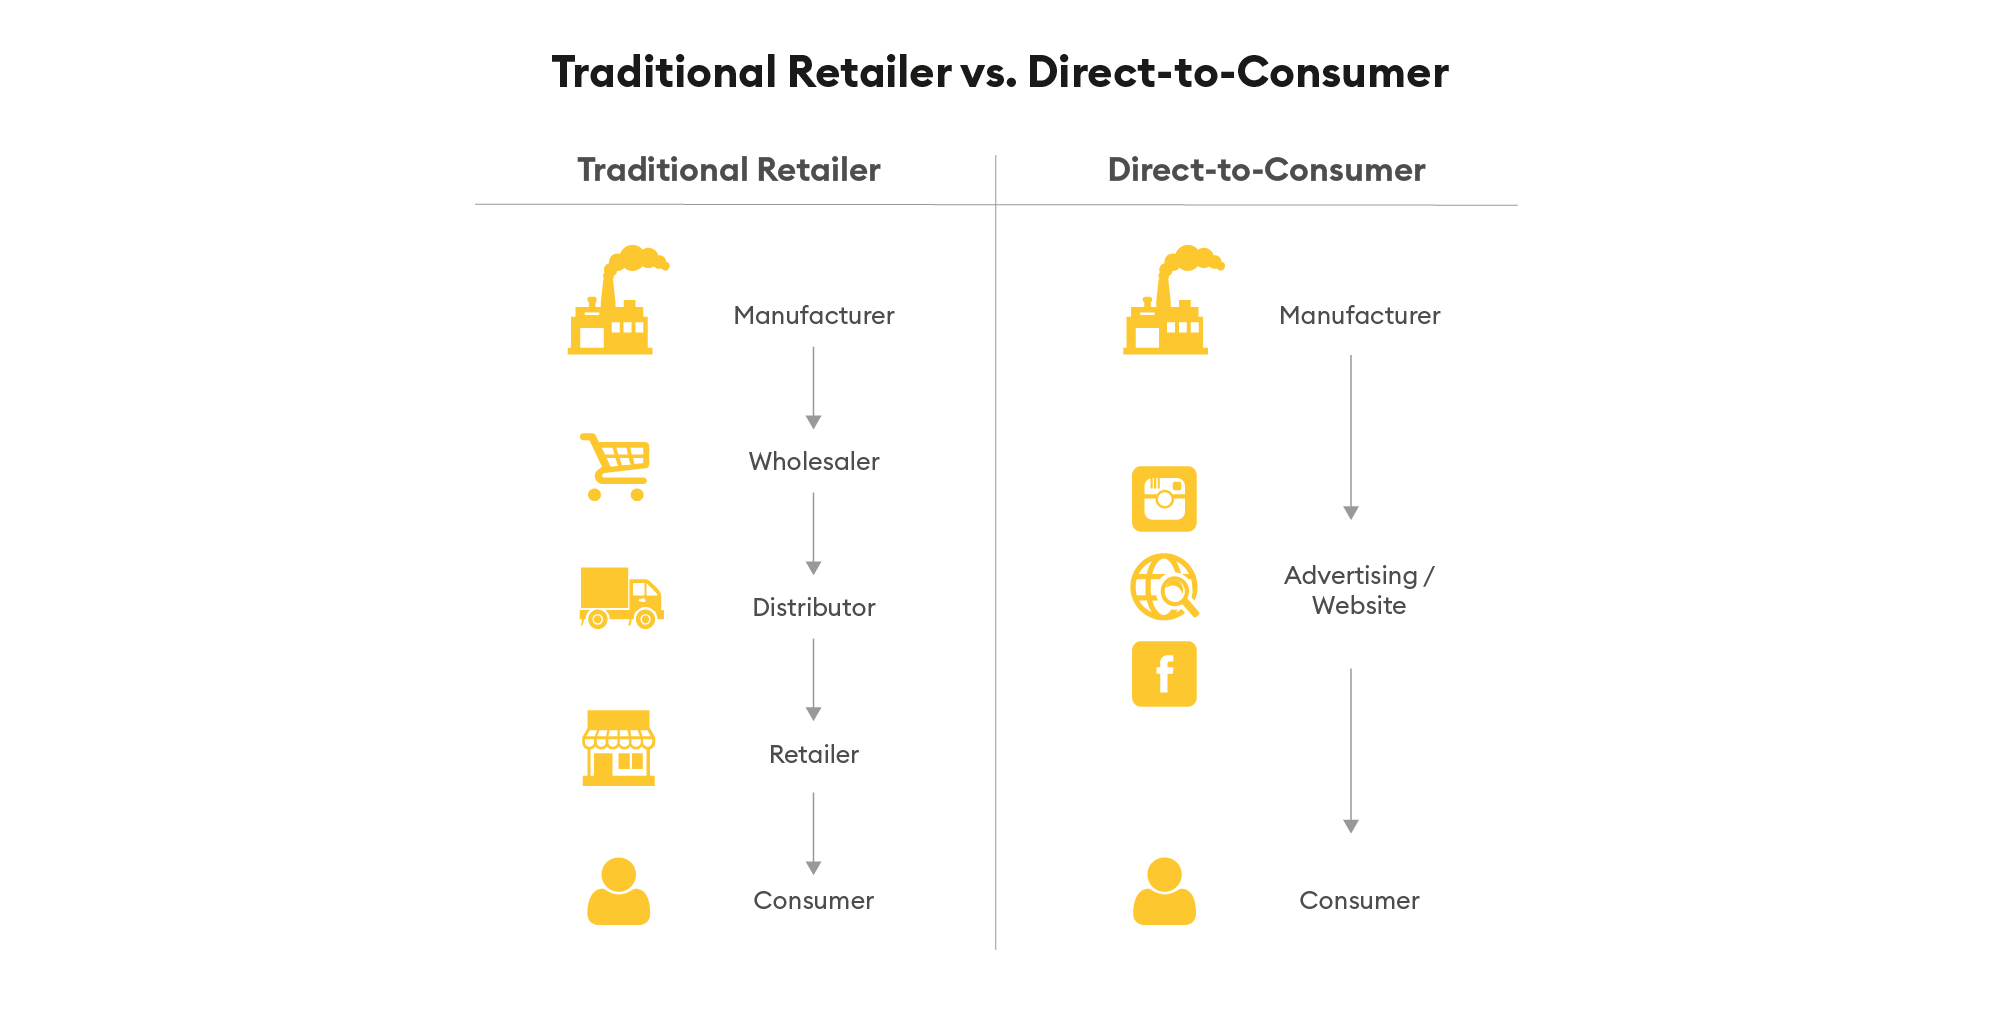 Direct-to-Consumer